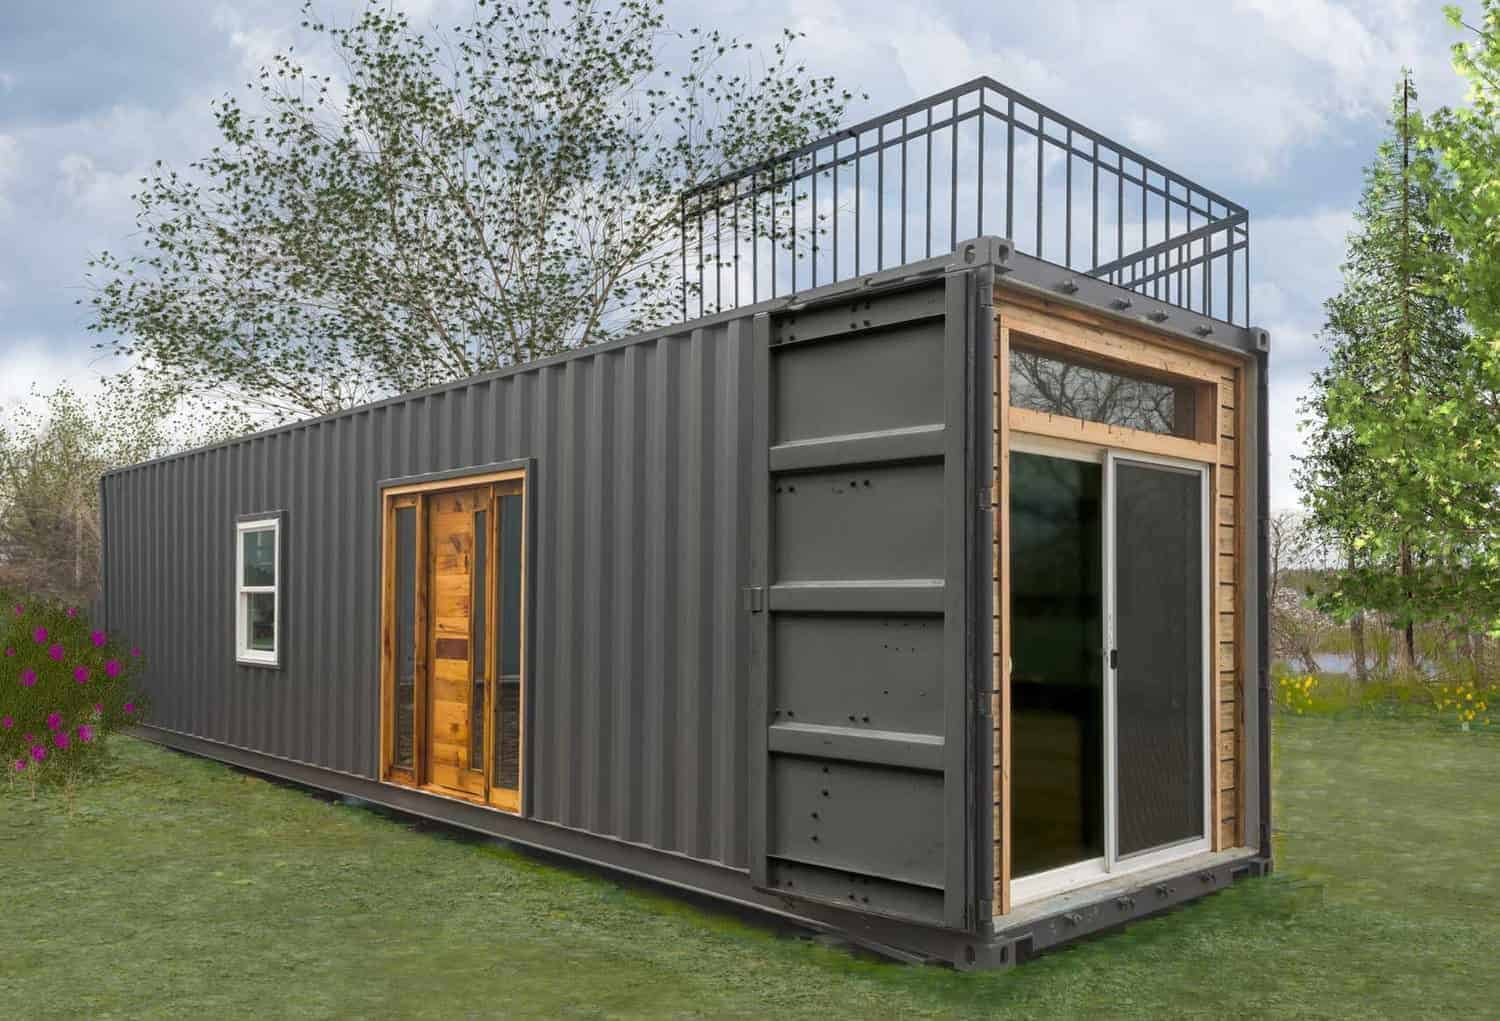 A tiny container house with amazing kitchen inside. The exterior is painted in gray.